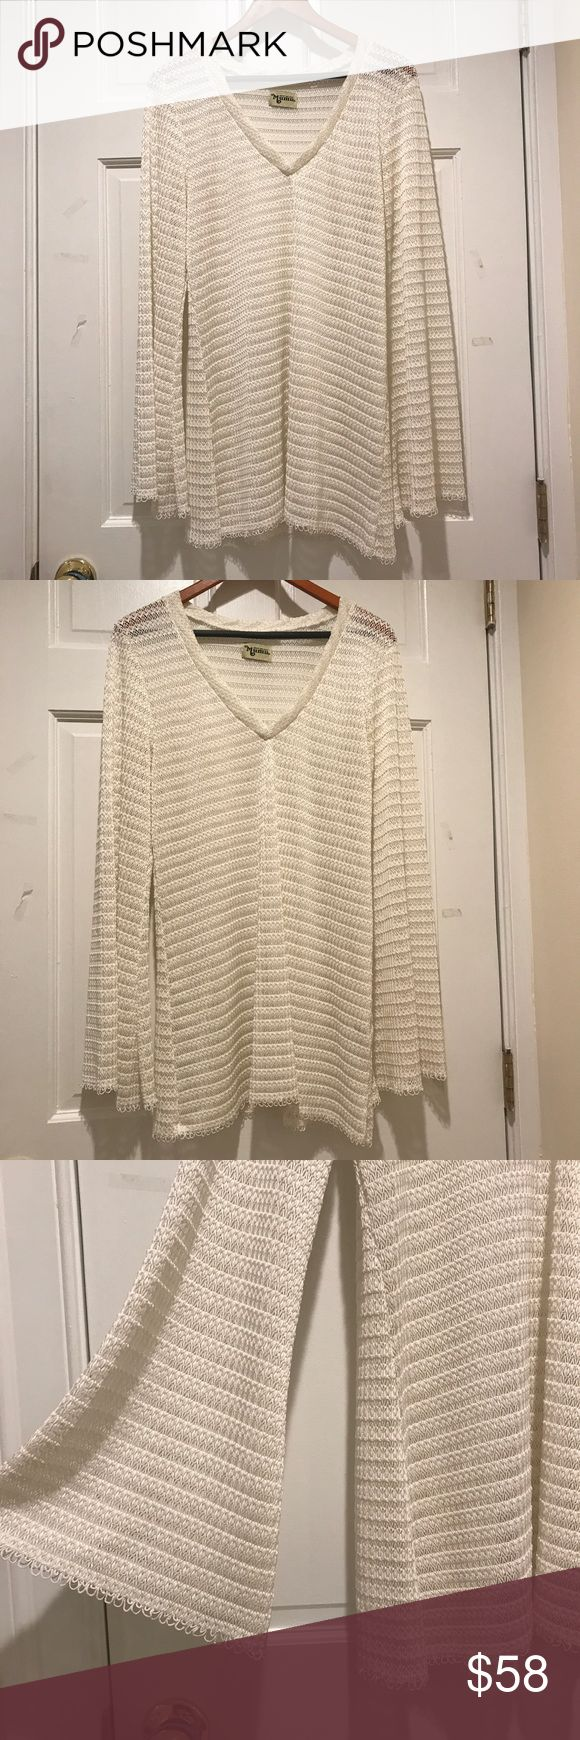 Show Me Your MuMu Cream Bell Sleeve Crochet Tunic Gorgeous slinky cream Tunic in open knot Crochet, bell sleeves and slouchy V neck! Perfect beach wear, cover up or paired with a crop top and cutoffs.  Excellent condition, worn once to a festival- one flaw - small round burn mark on sleeve near cuff - not very noticeable due to the location and the texture of the top. Show Me Your MuMu Tops Tunics